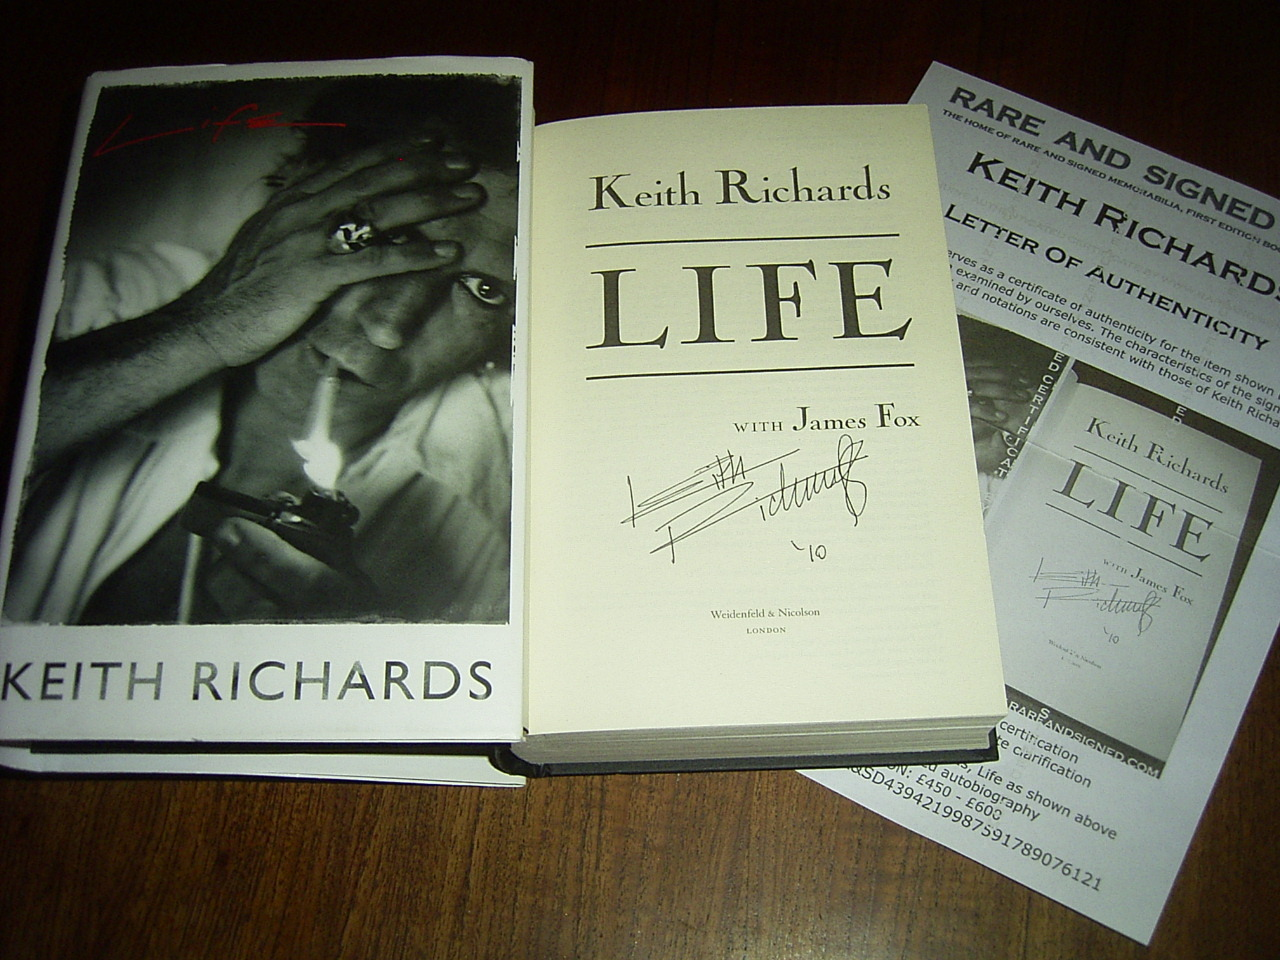 Libro De Keith Richards Keith Richards Signed